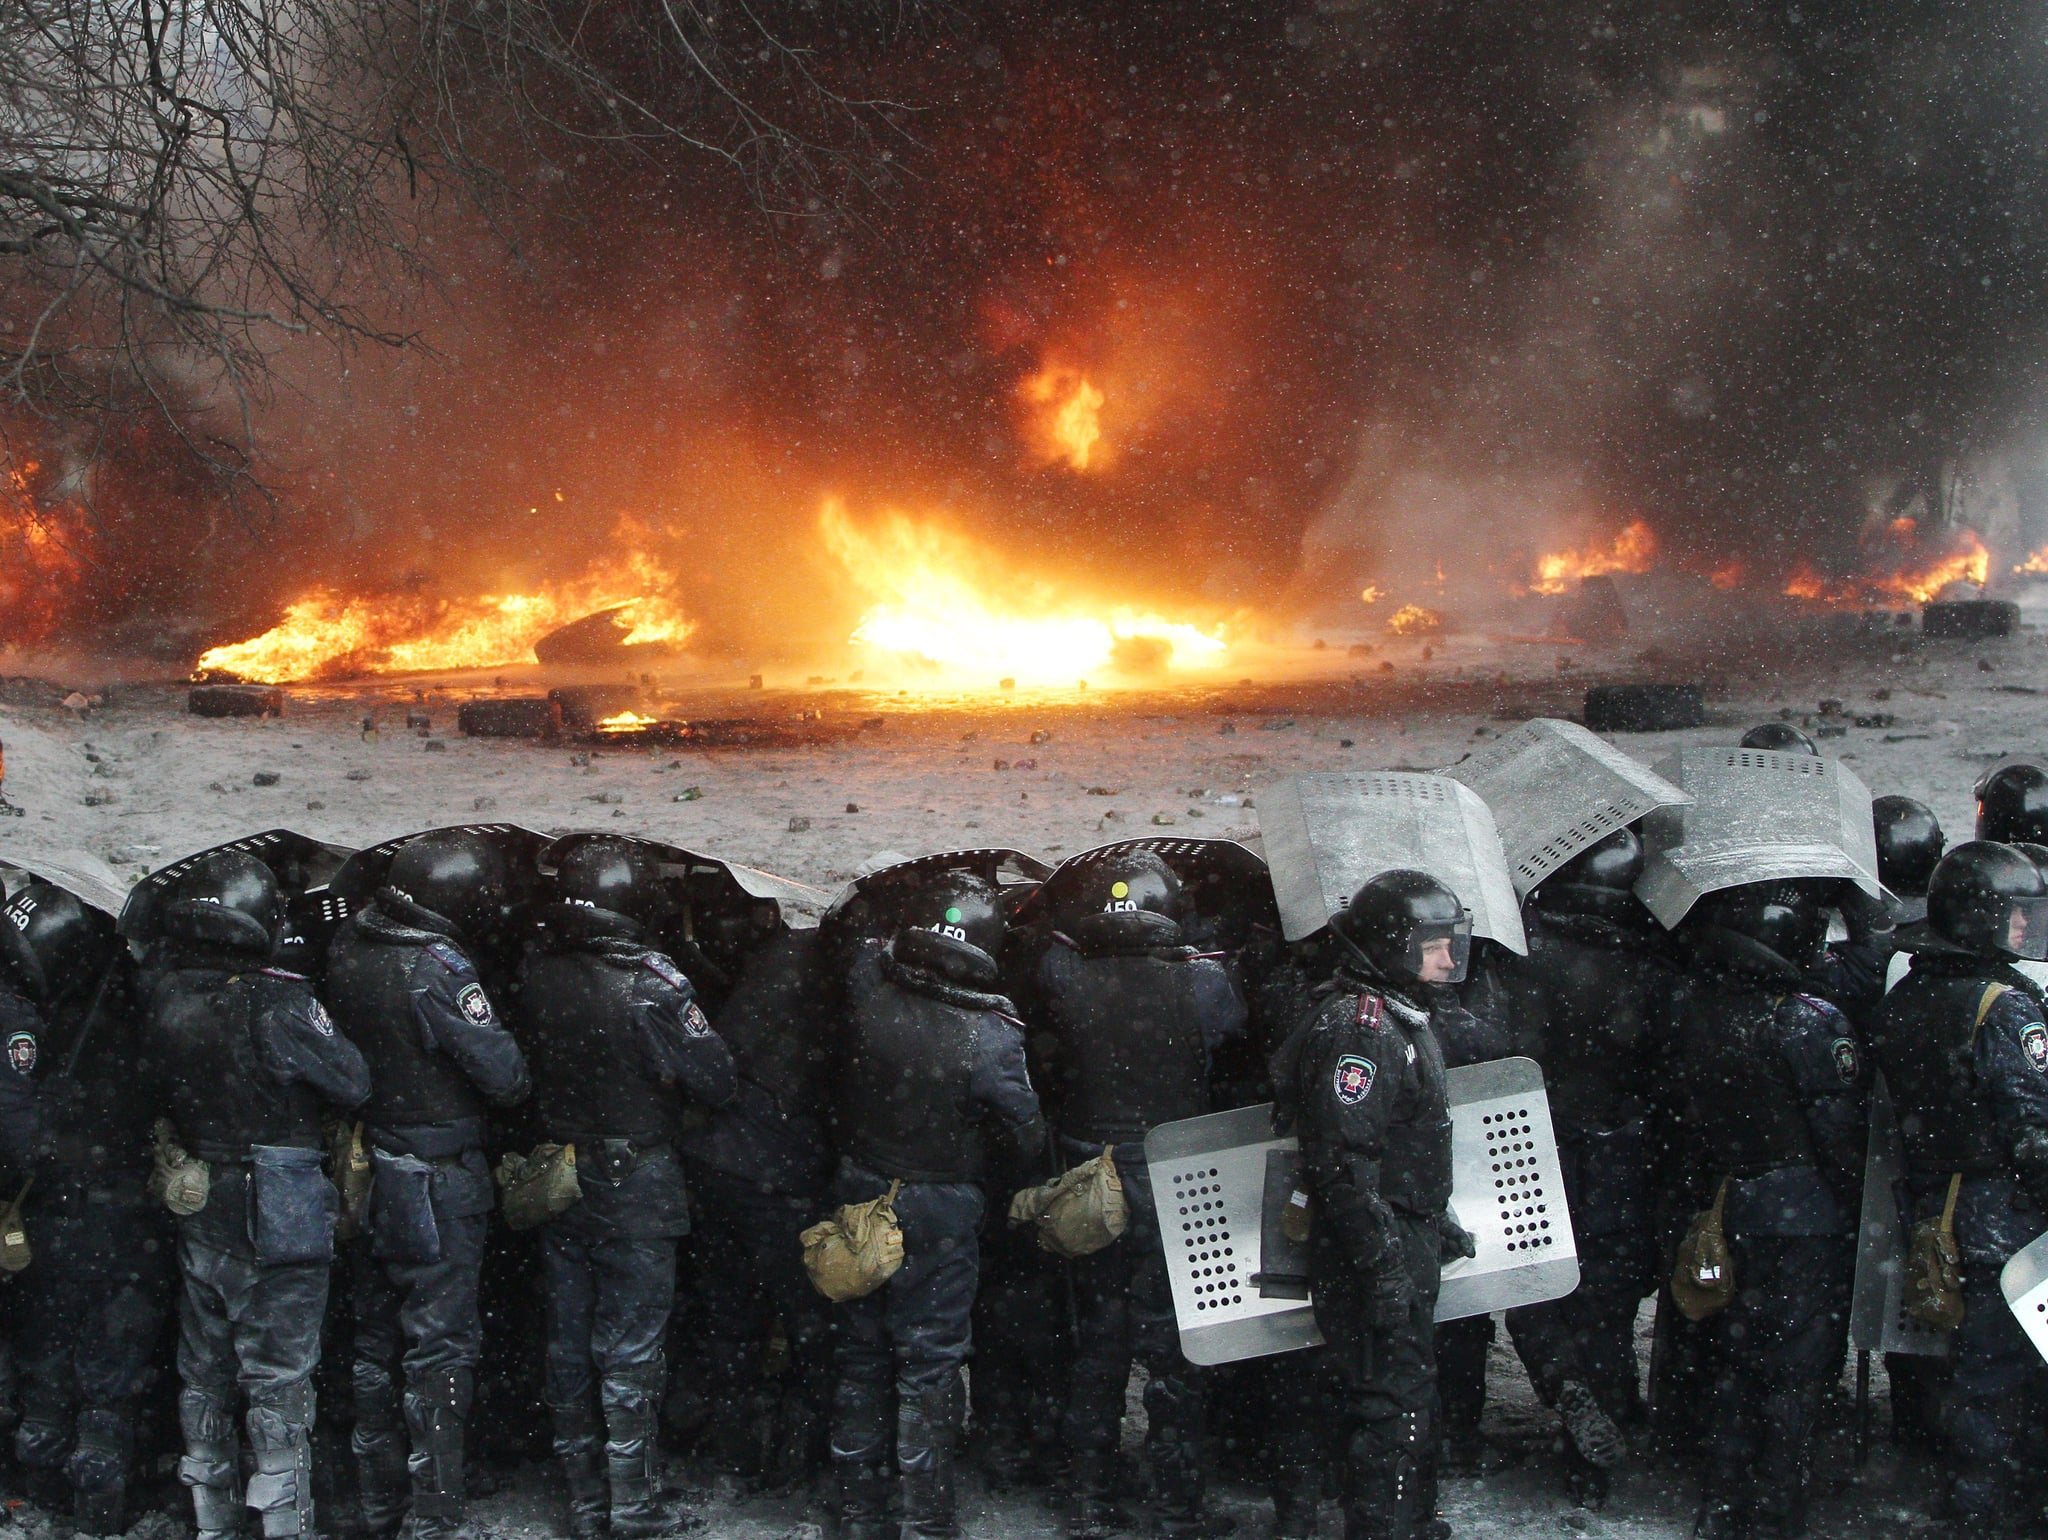 The policemen held up shields to block themselves from falling ashes.